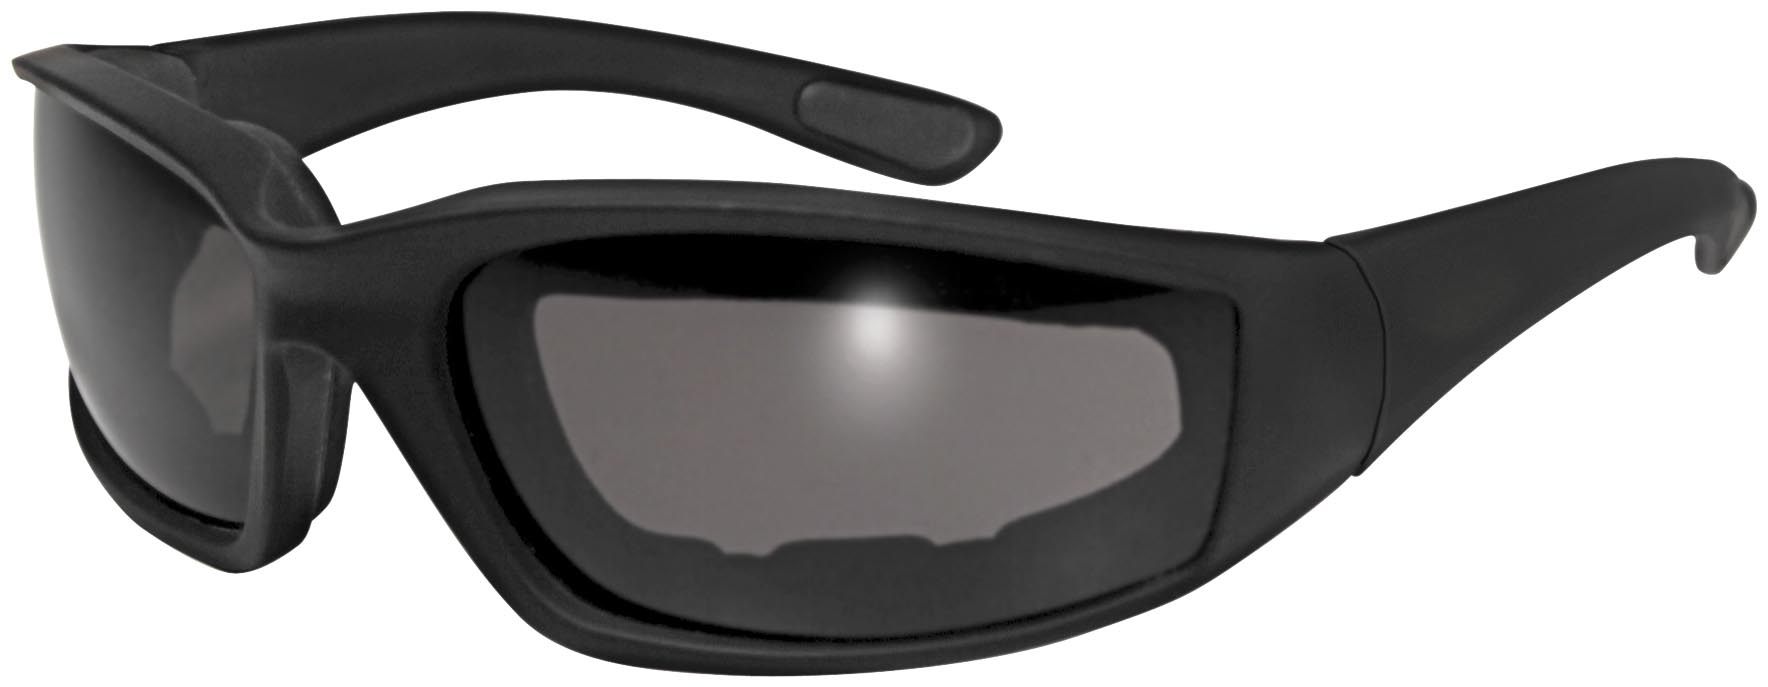 River Road Kickback Sunglasses